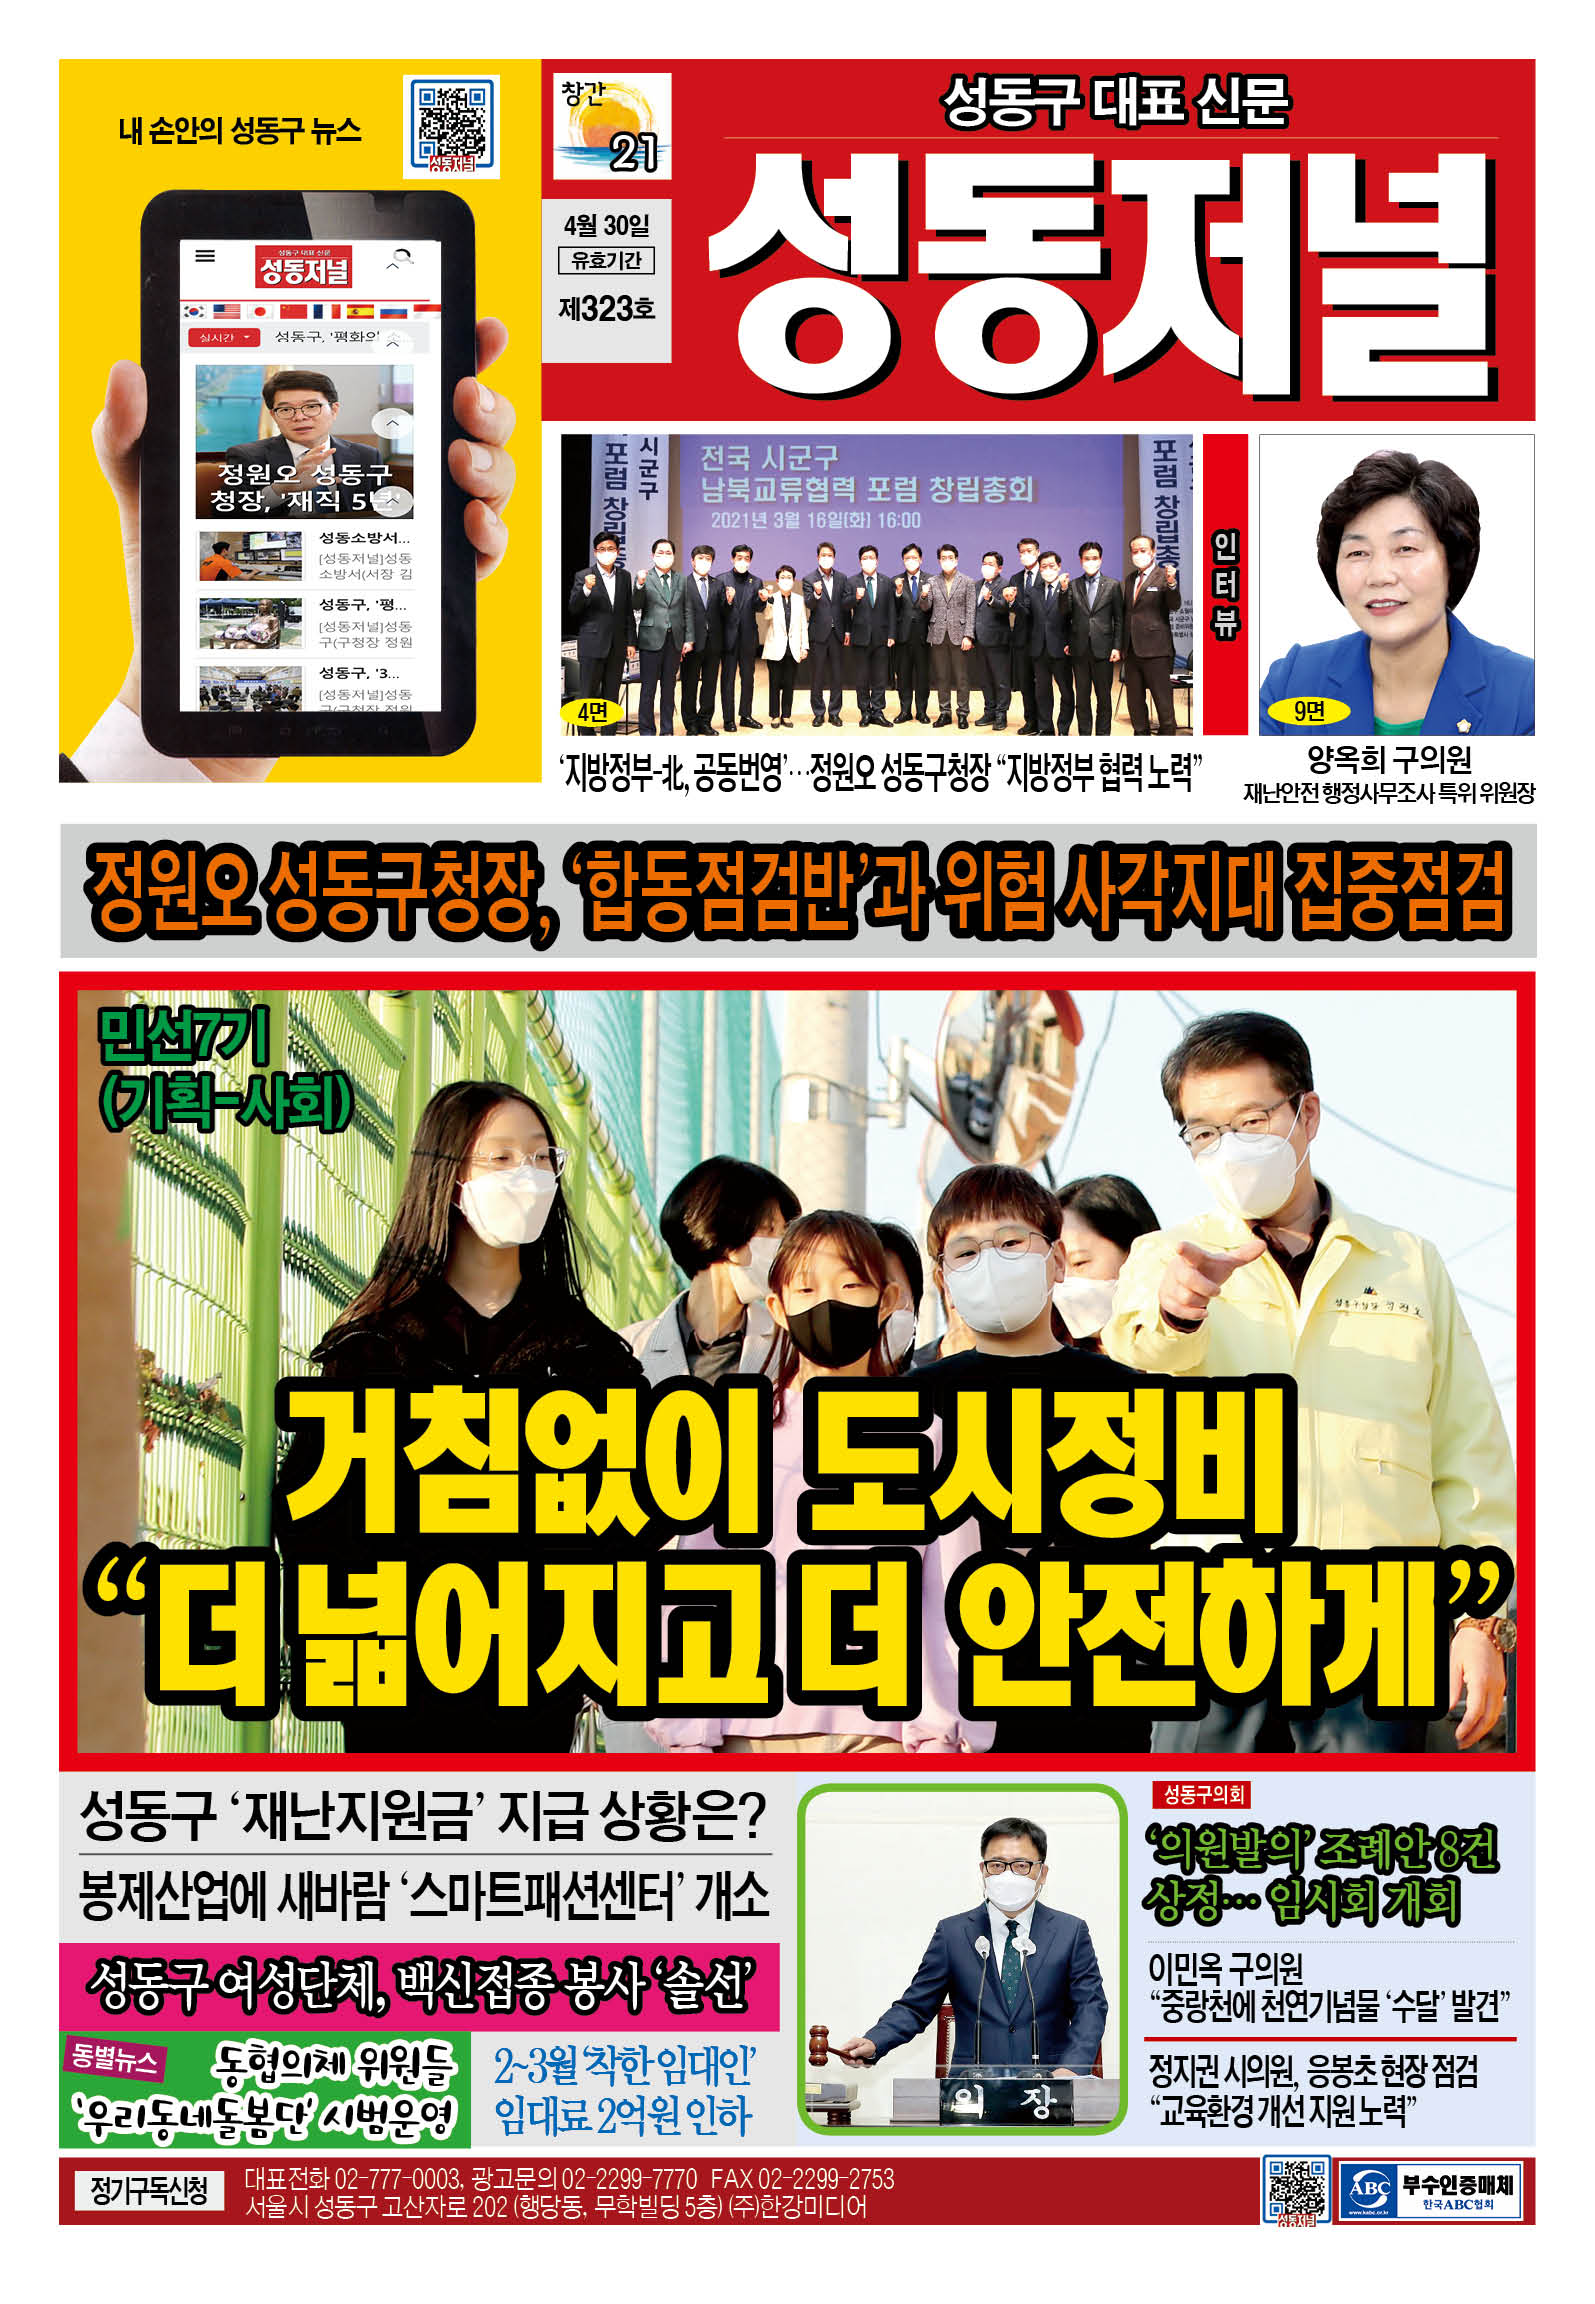 /cover/download.php?filename=205.jpg 표지이미지